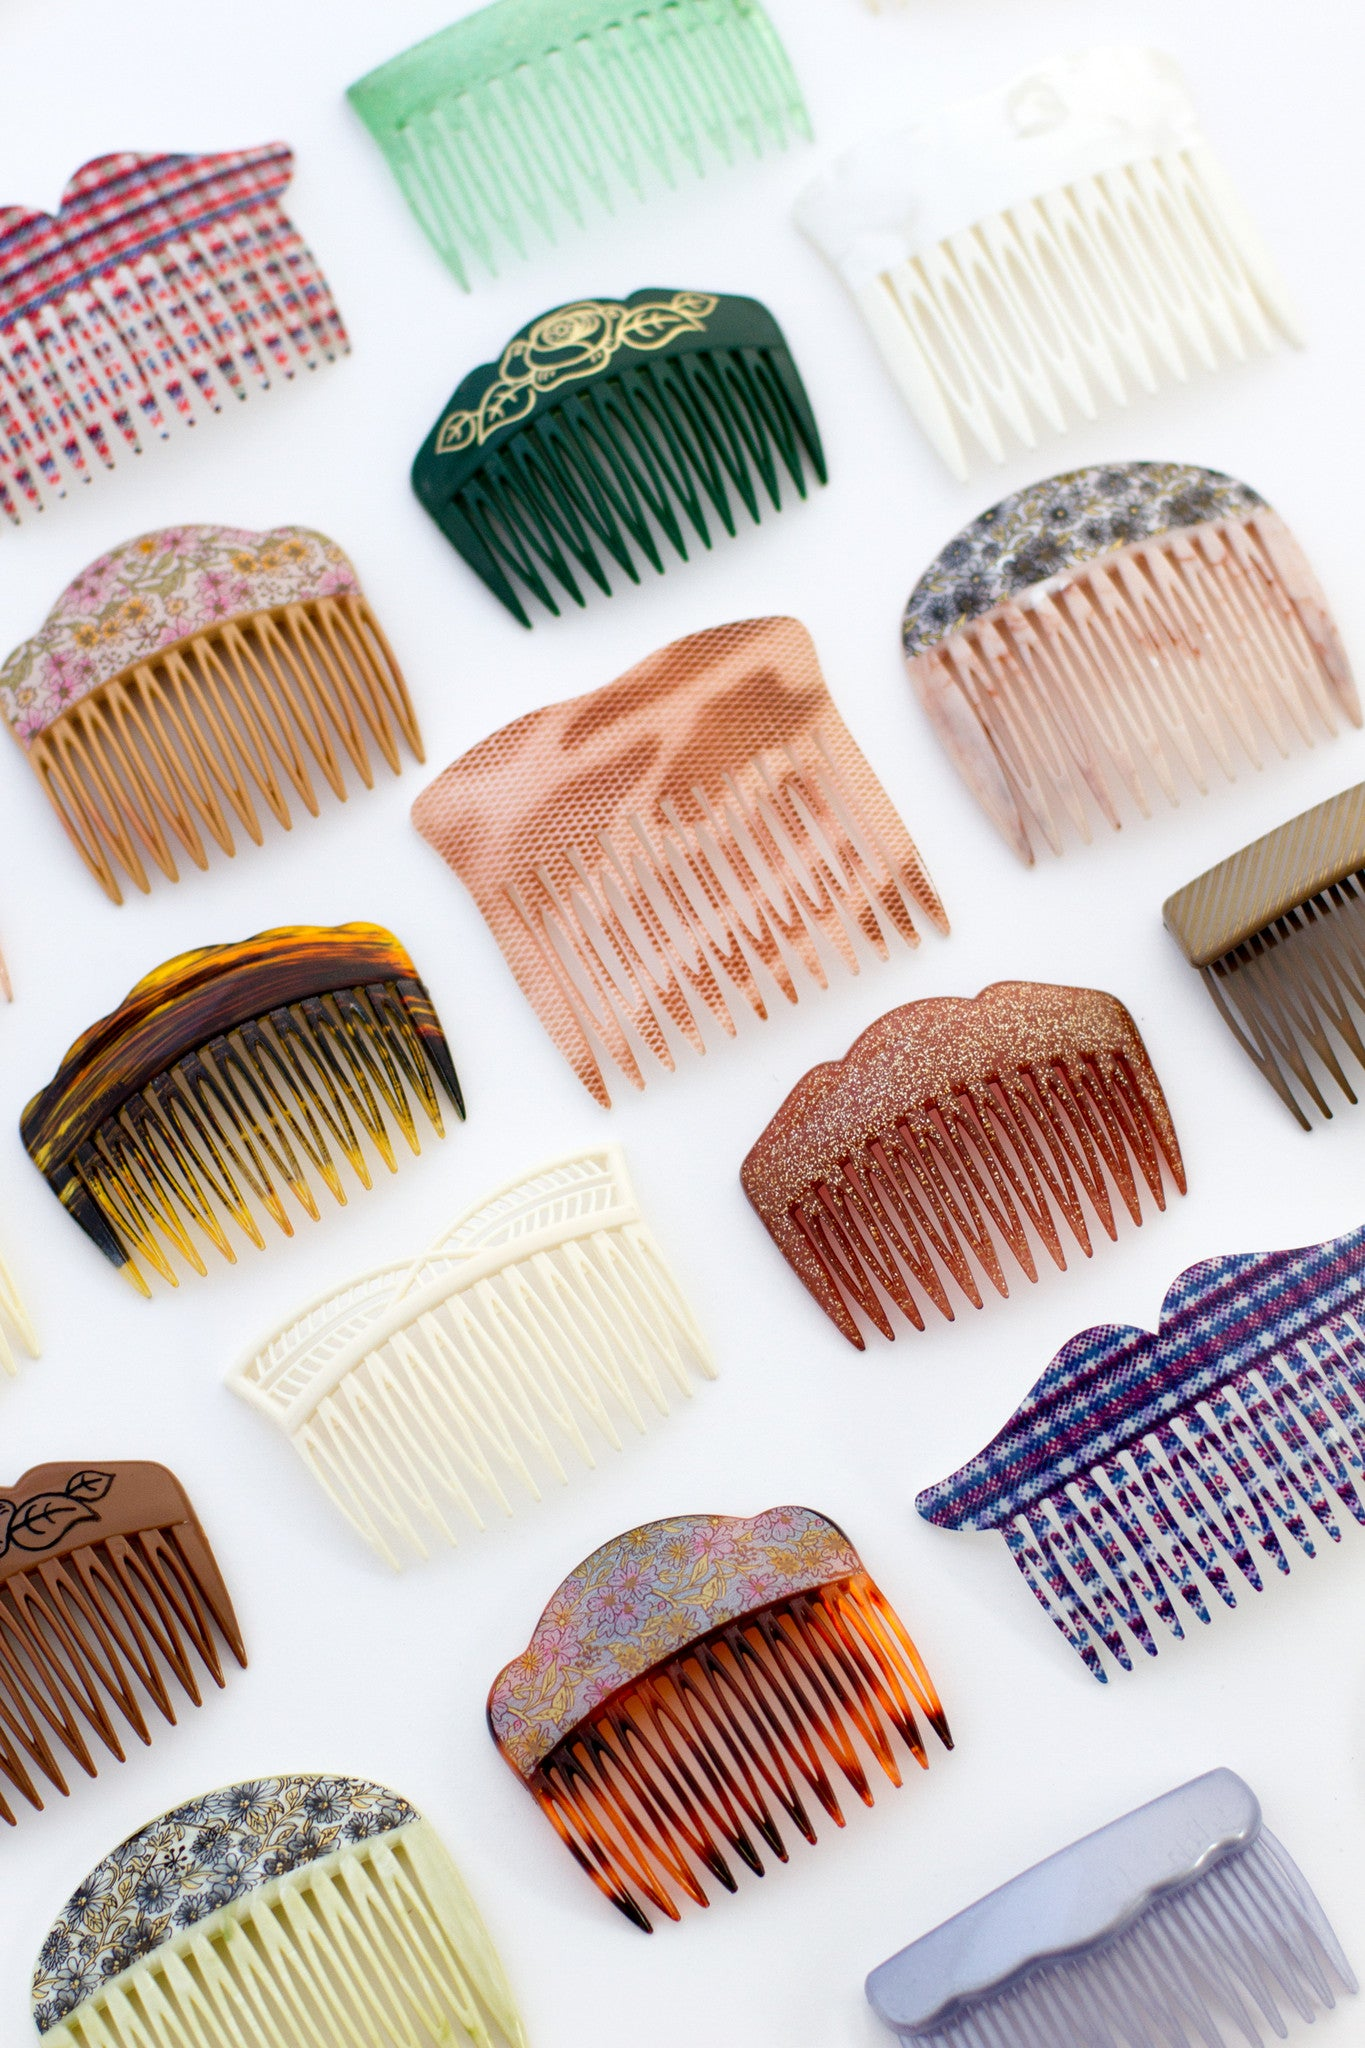 vintage combs made in france